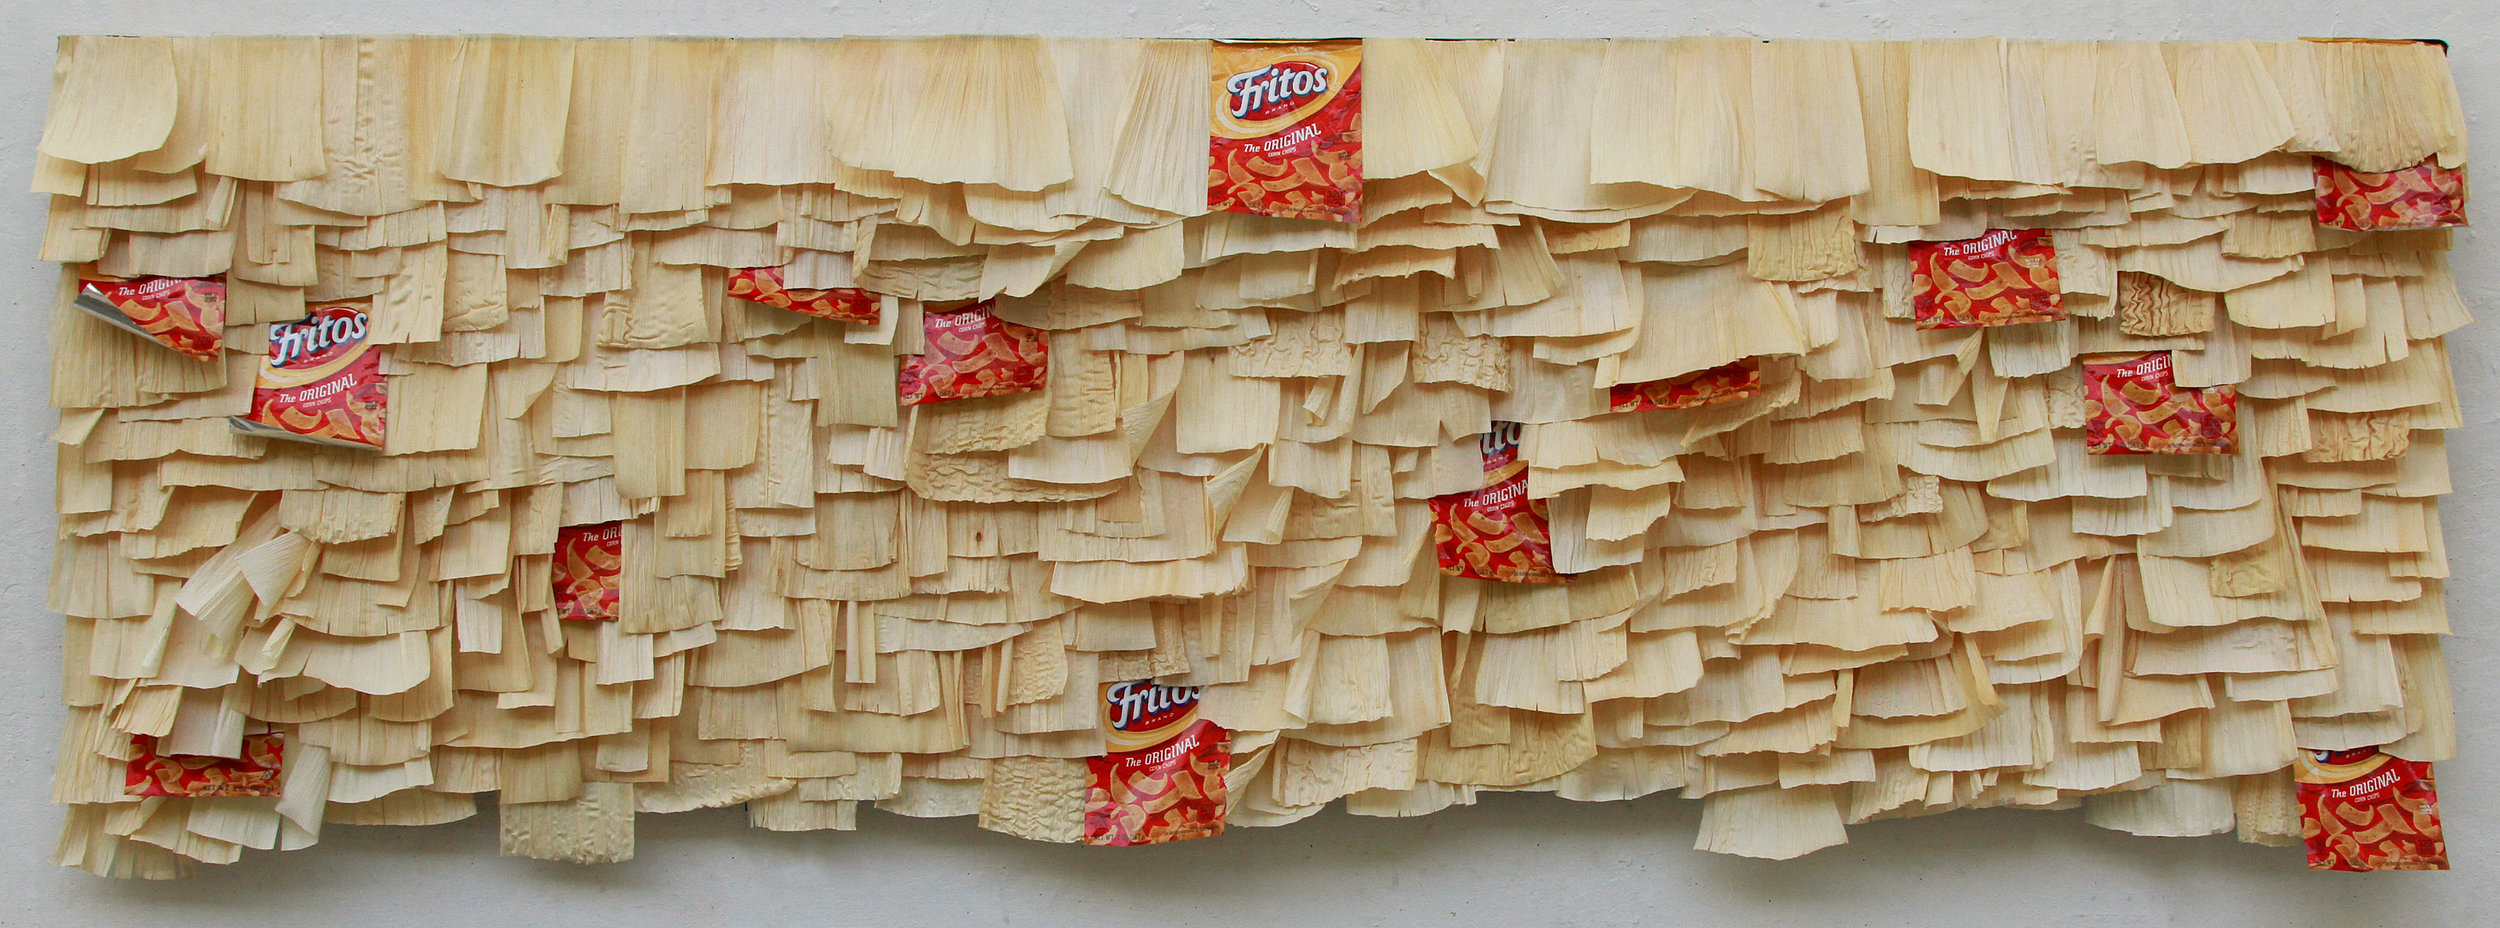 Cambios naturales   Fritos bags and corn husks on acrylic on canvas